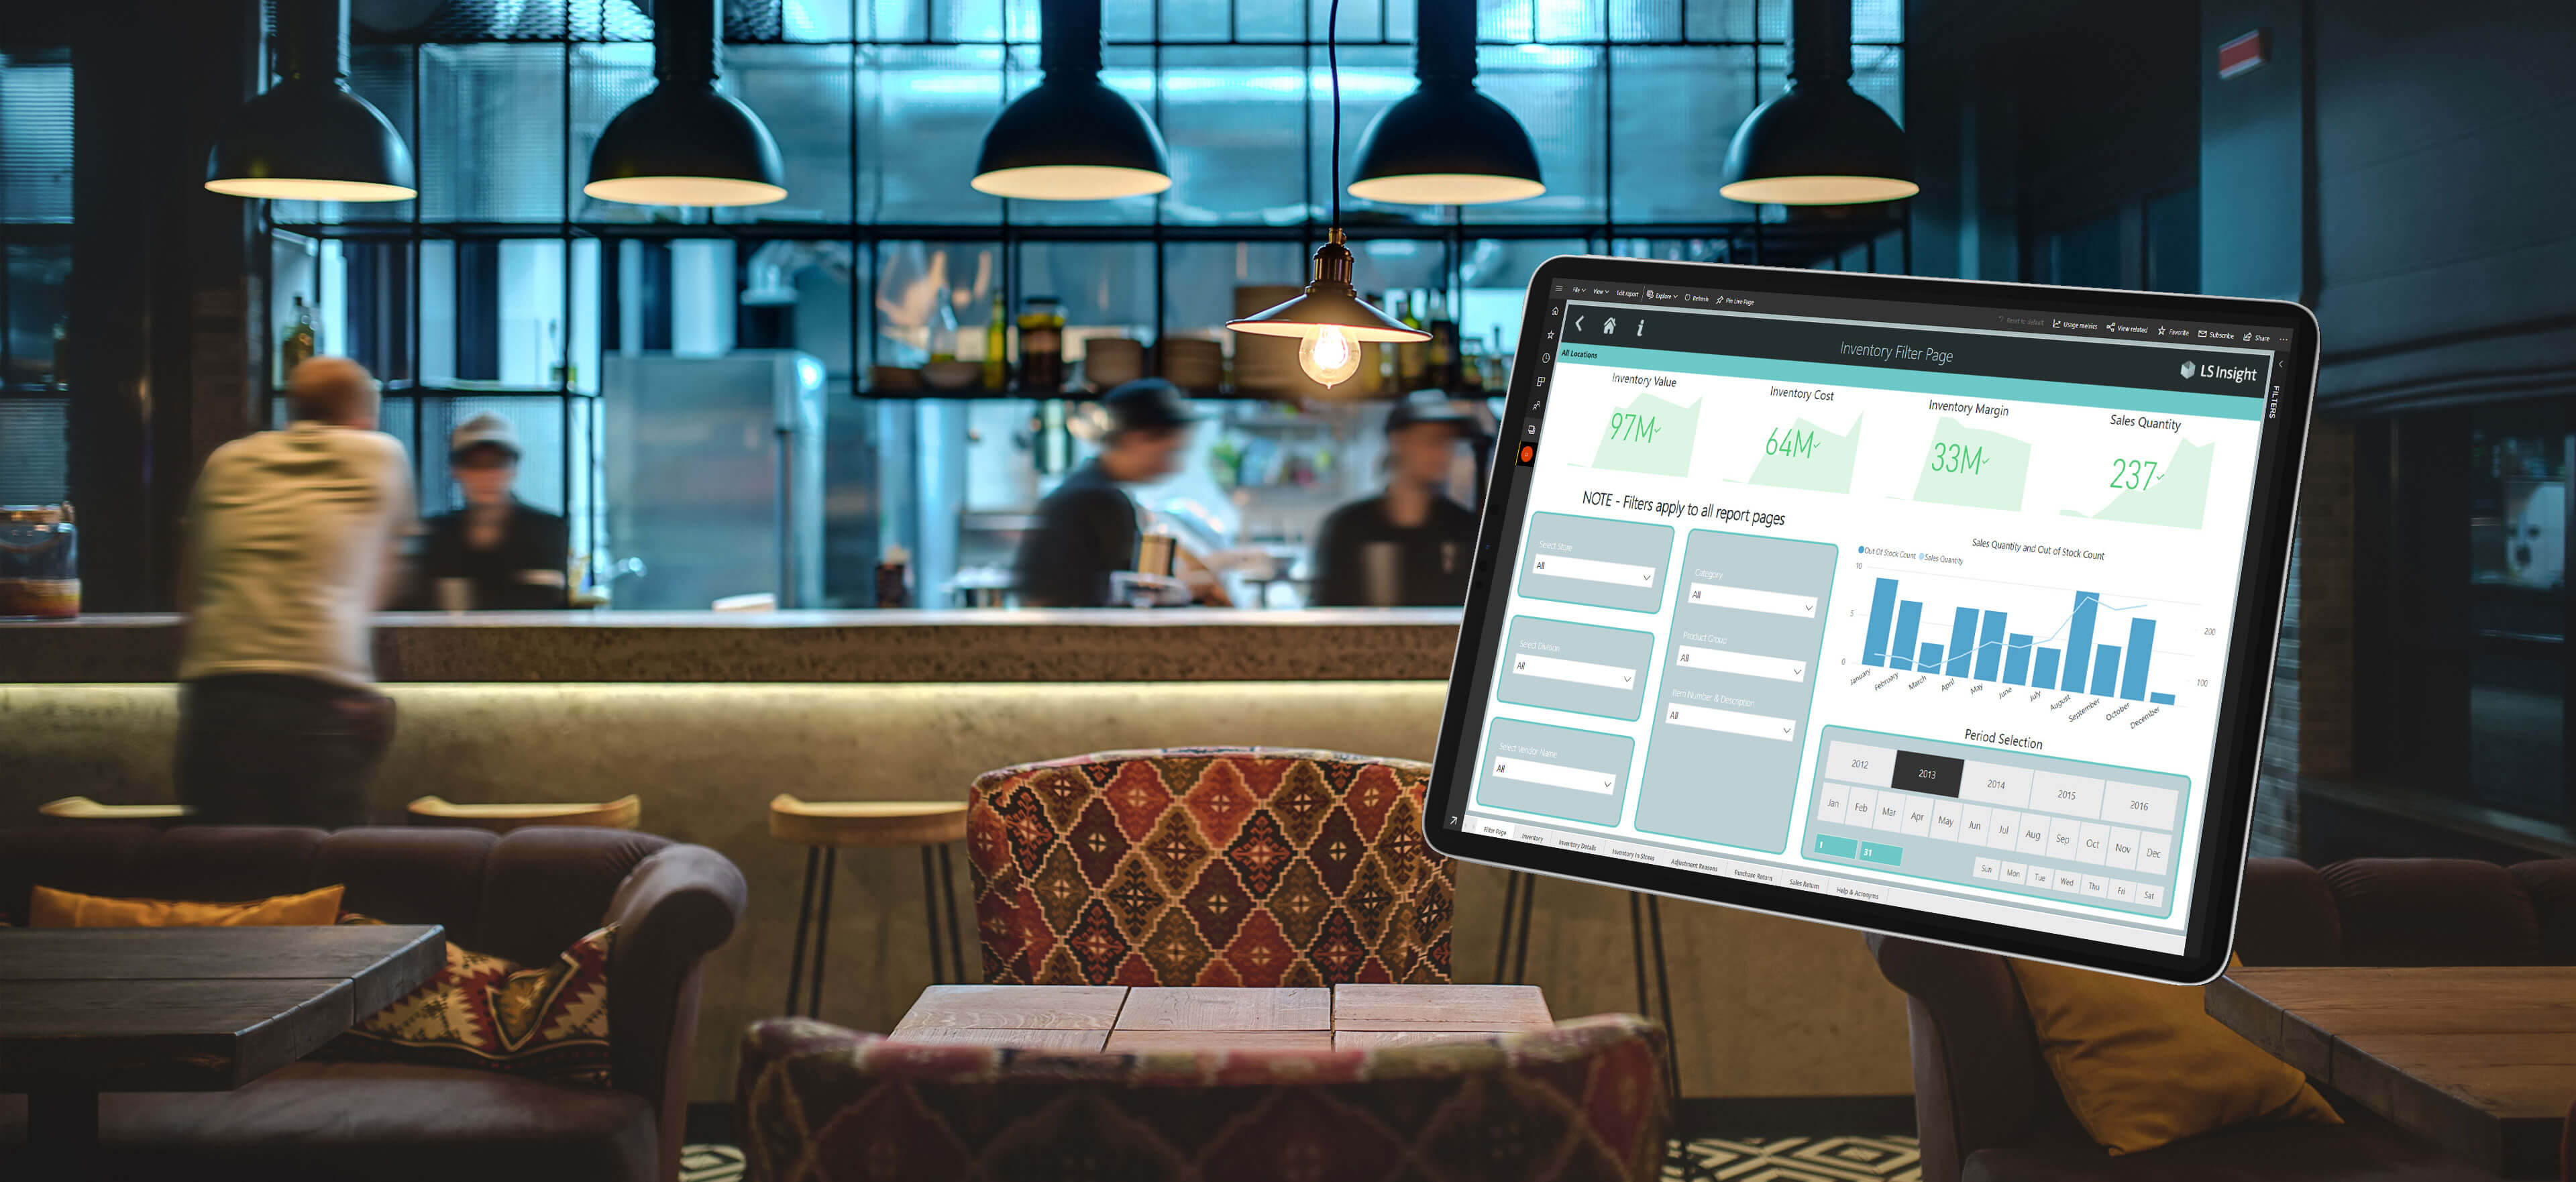 LS-Central-for-restaurants-data-analytics-and-reporting-header